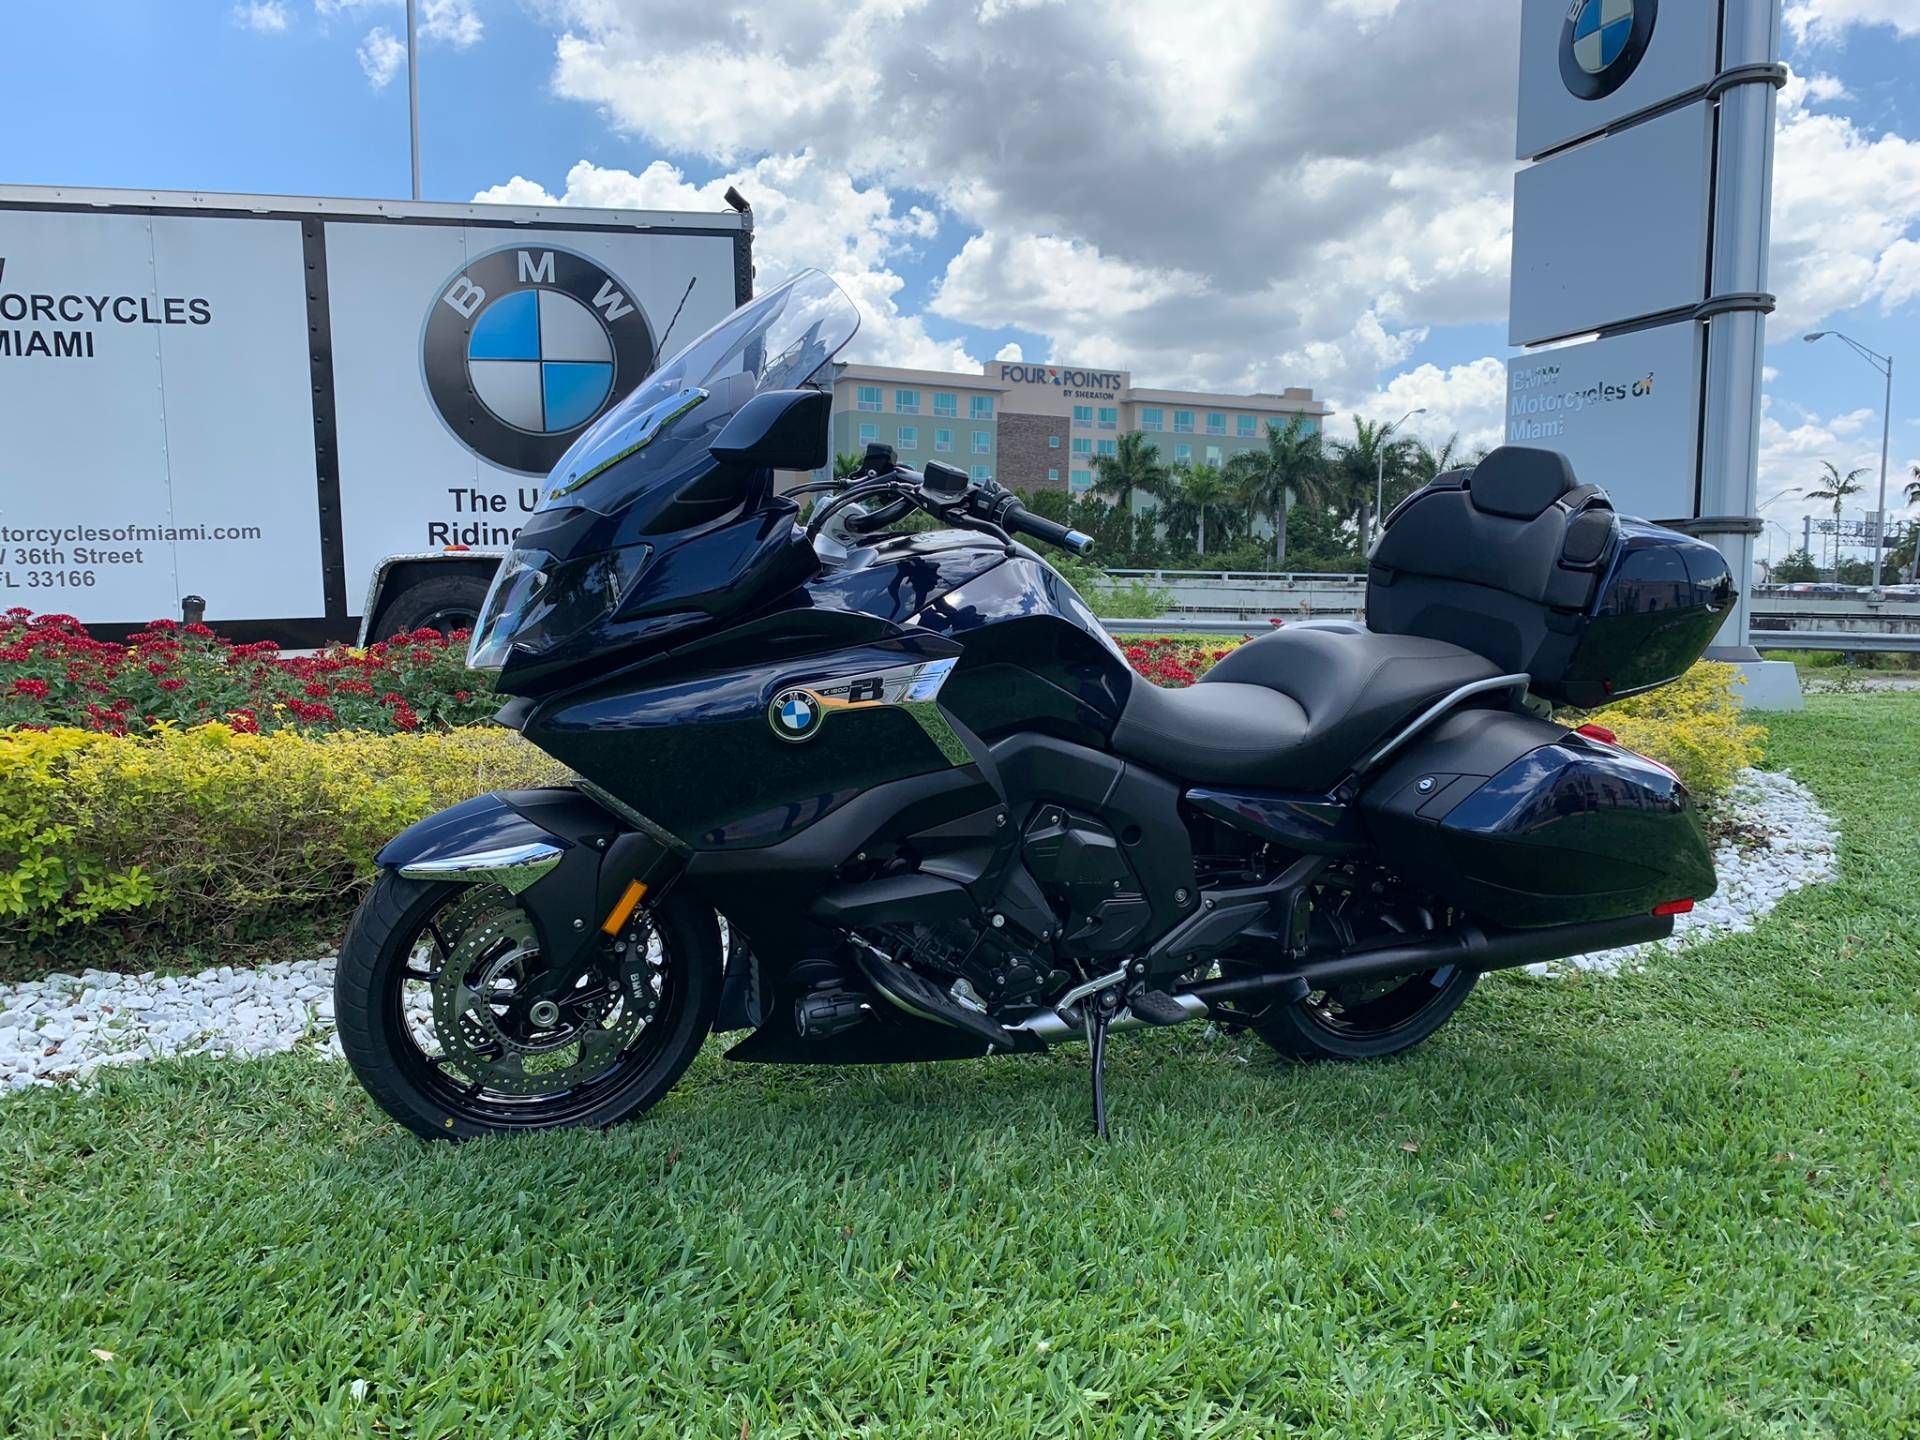 New 2019 BMW K 1600 B for sale, BMW K 1600B for sale, BMW Motorcycle K1600B, new BMW Bagger, Gran America. BMW Motorcycles of Miami, Motorcycles of Miami, Motorcycles Miami - Photo 5